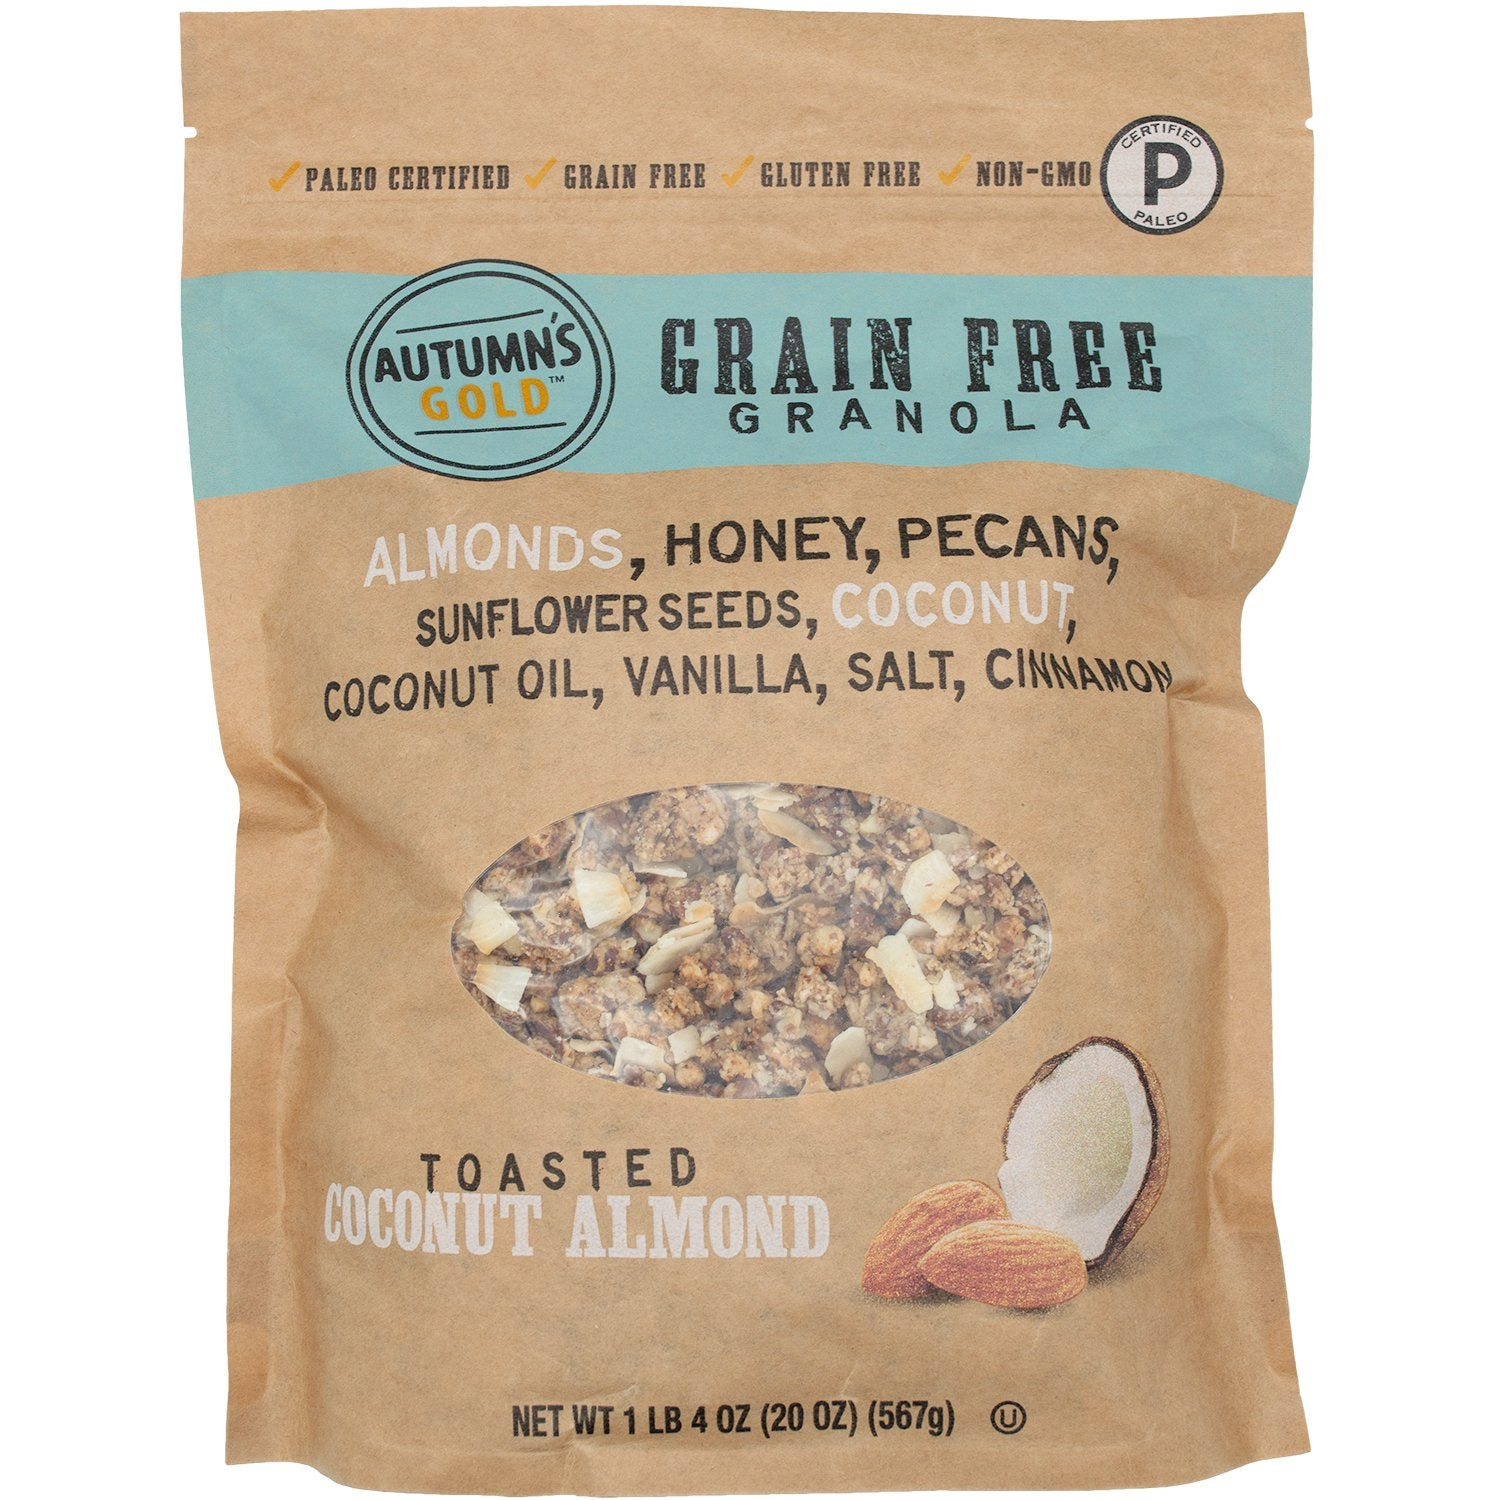 Autumn's Gold Grain Free Granola, Paleo Certified Autumn's Gold Toasted Coconut Almond 20 Ounce